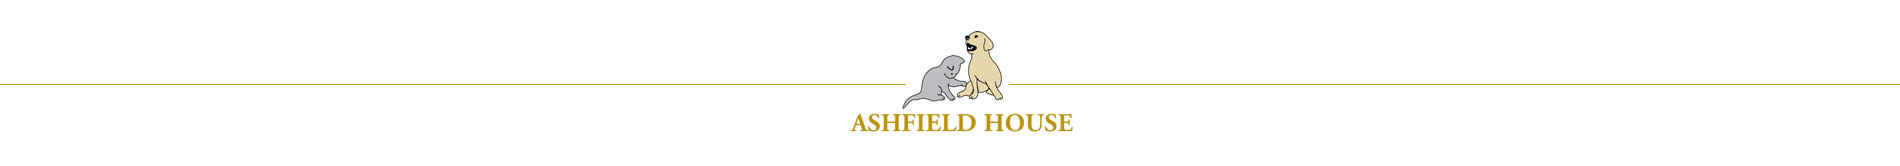 ashfield house vet hospital in nottingham logo